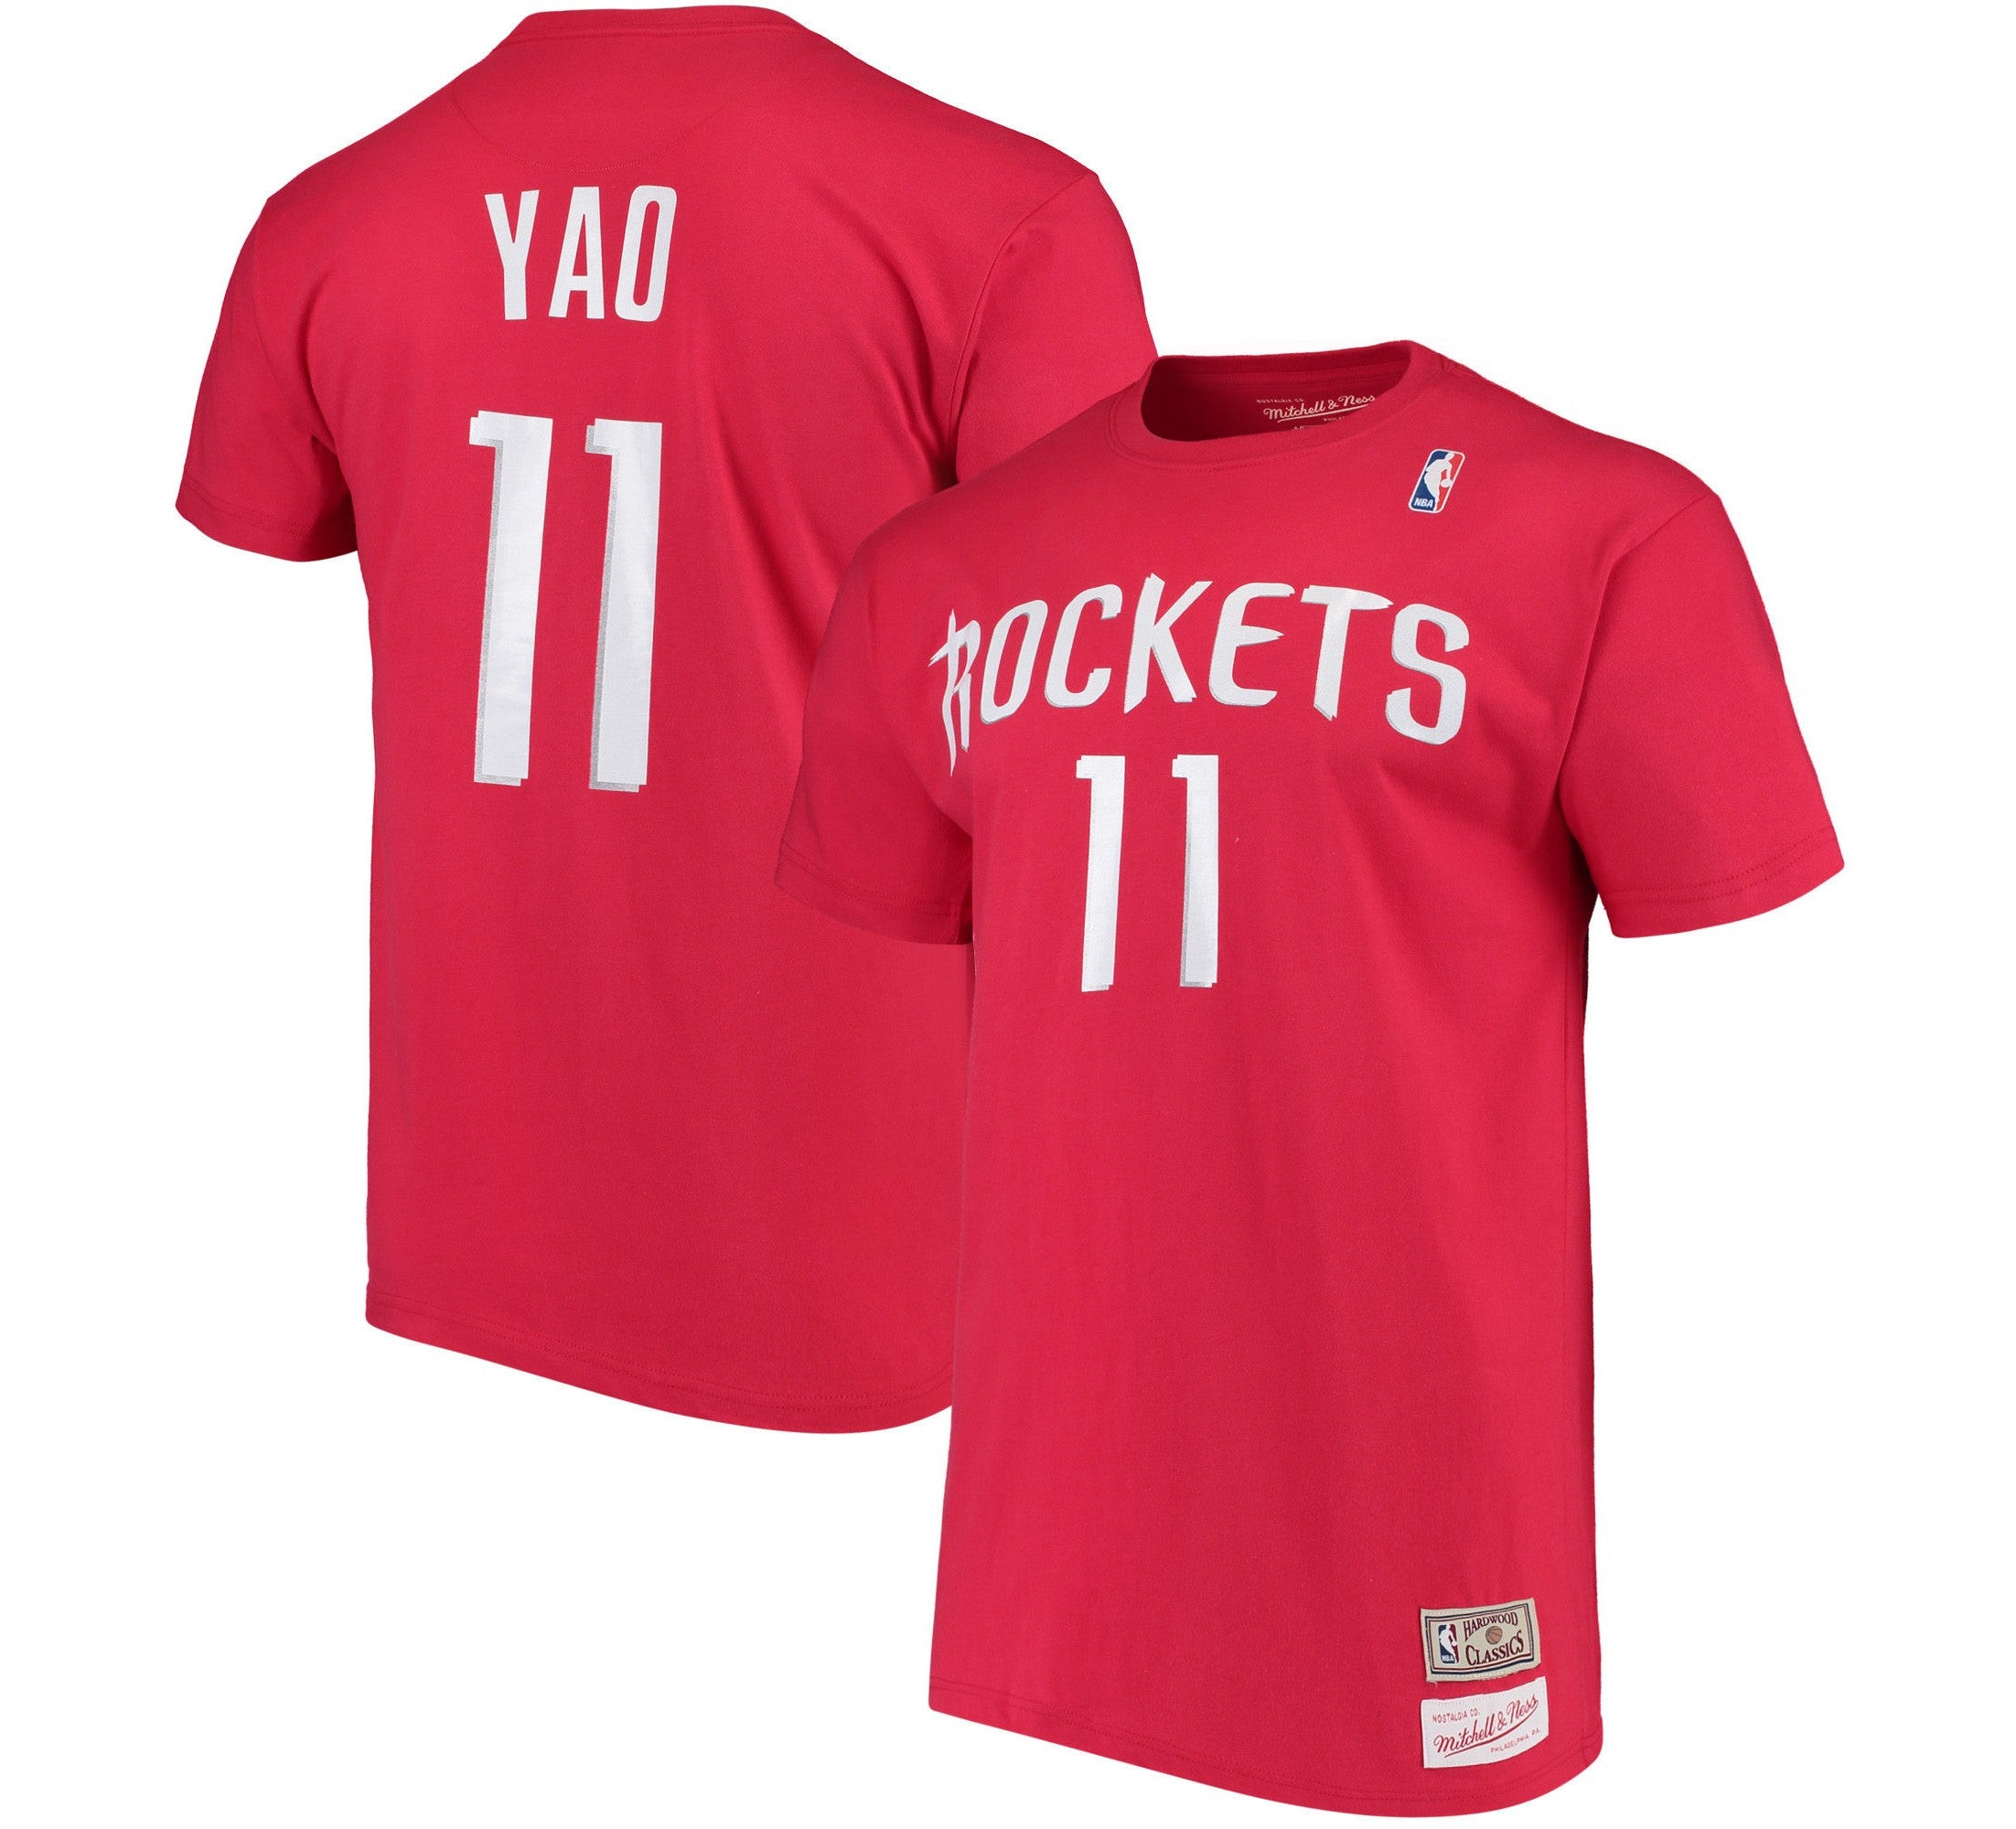 1618fbf3bb4 Yao Ming Rockets NBA Shirt Houston Champion Jersey 90 s Retro Rare ...